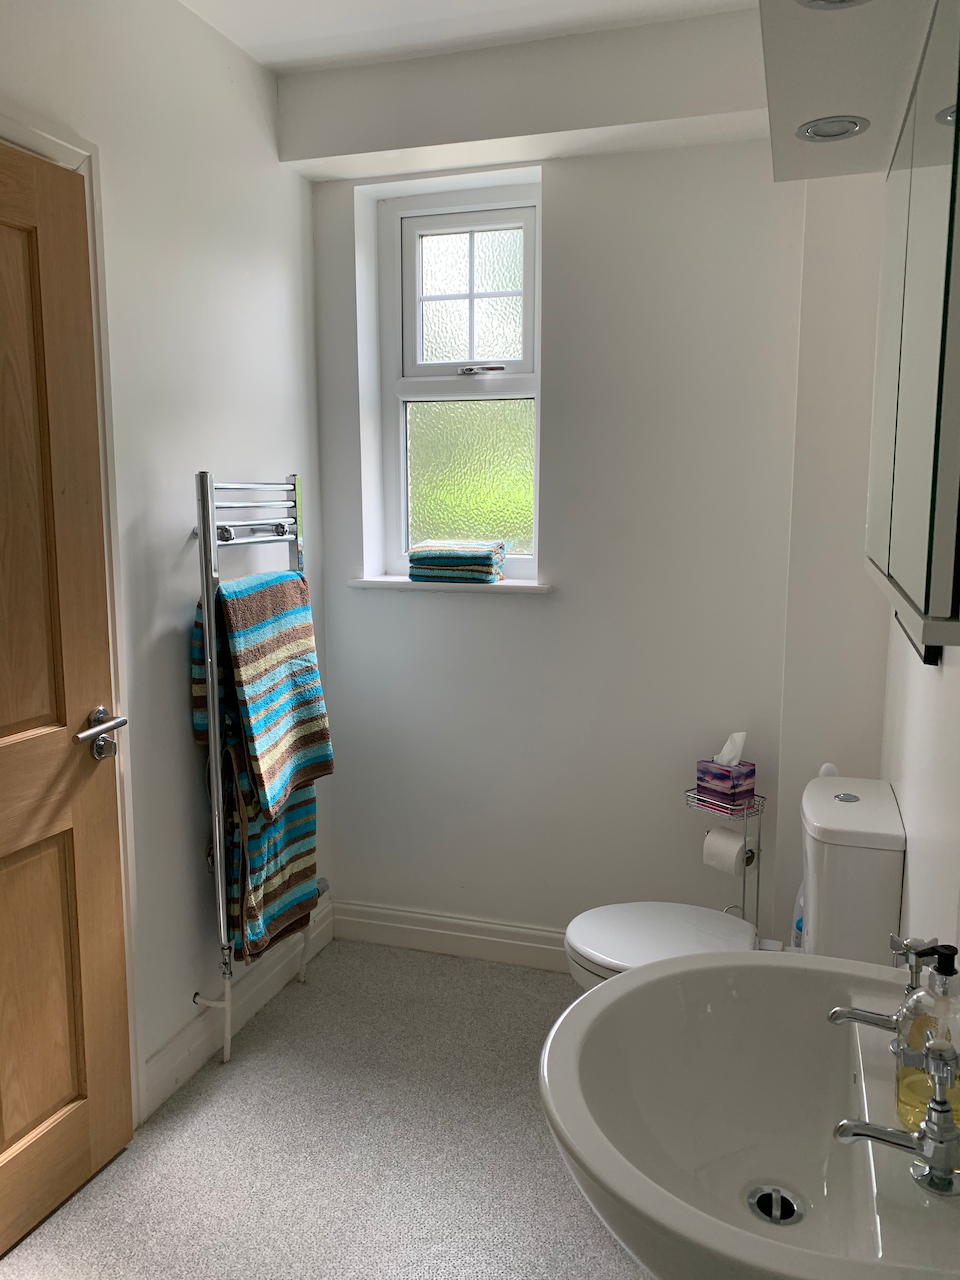 En suite shower room with complimentary toiletries and cosy towels